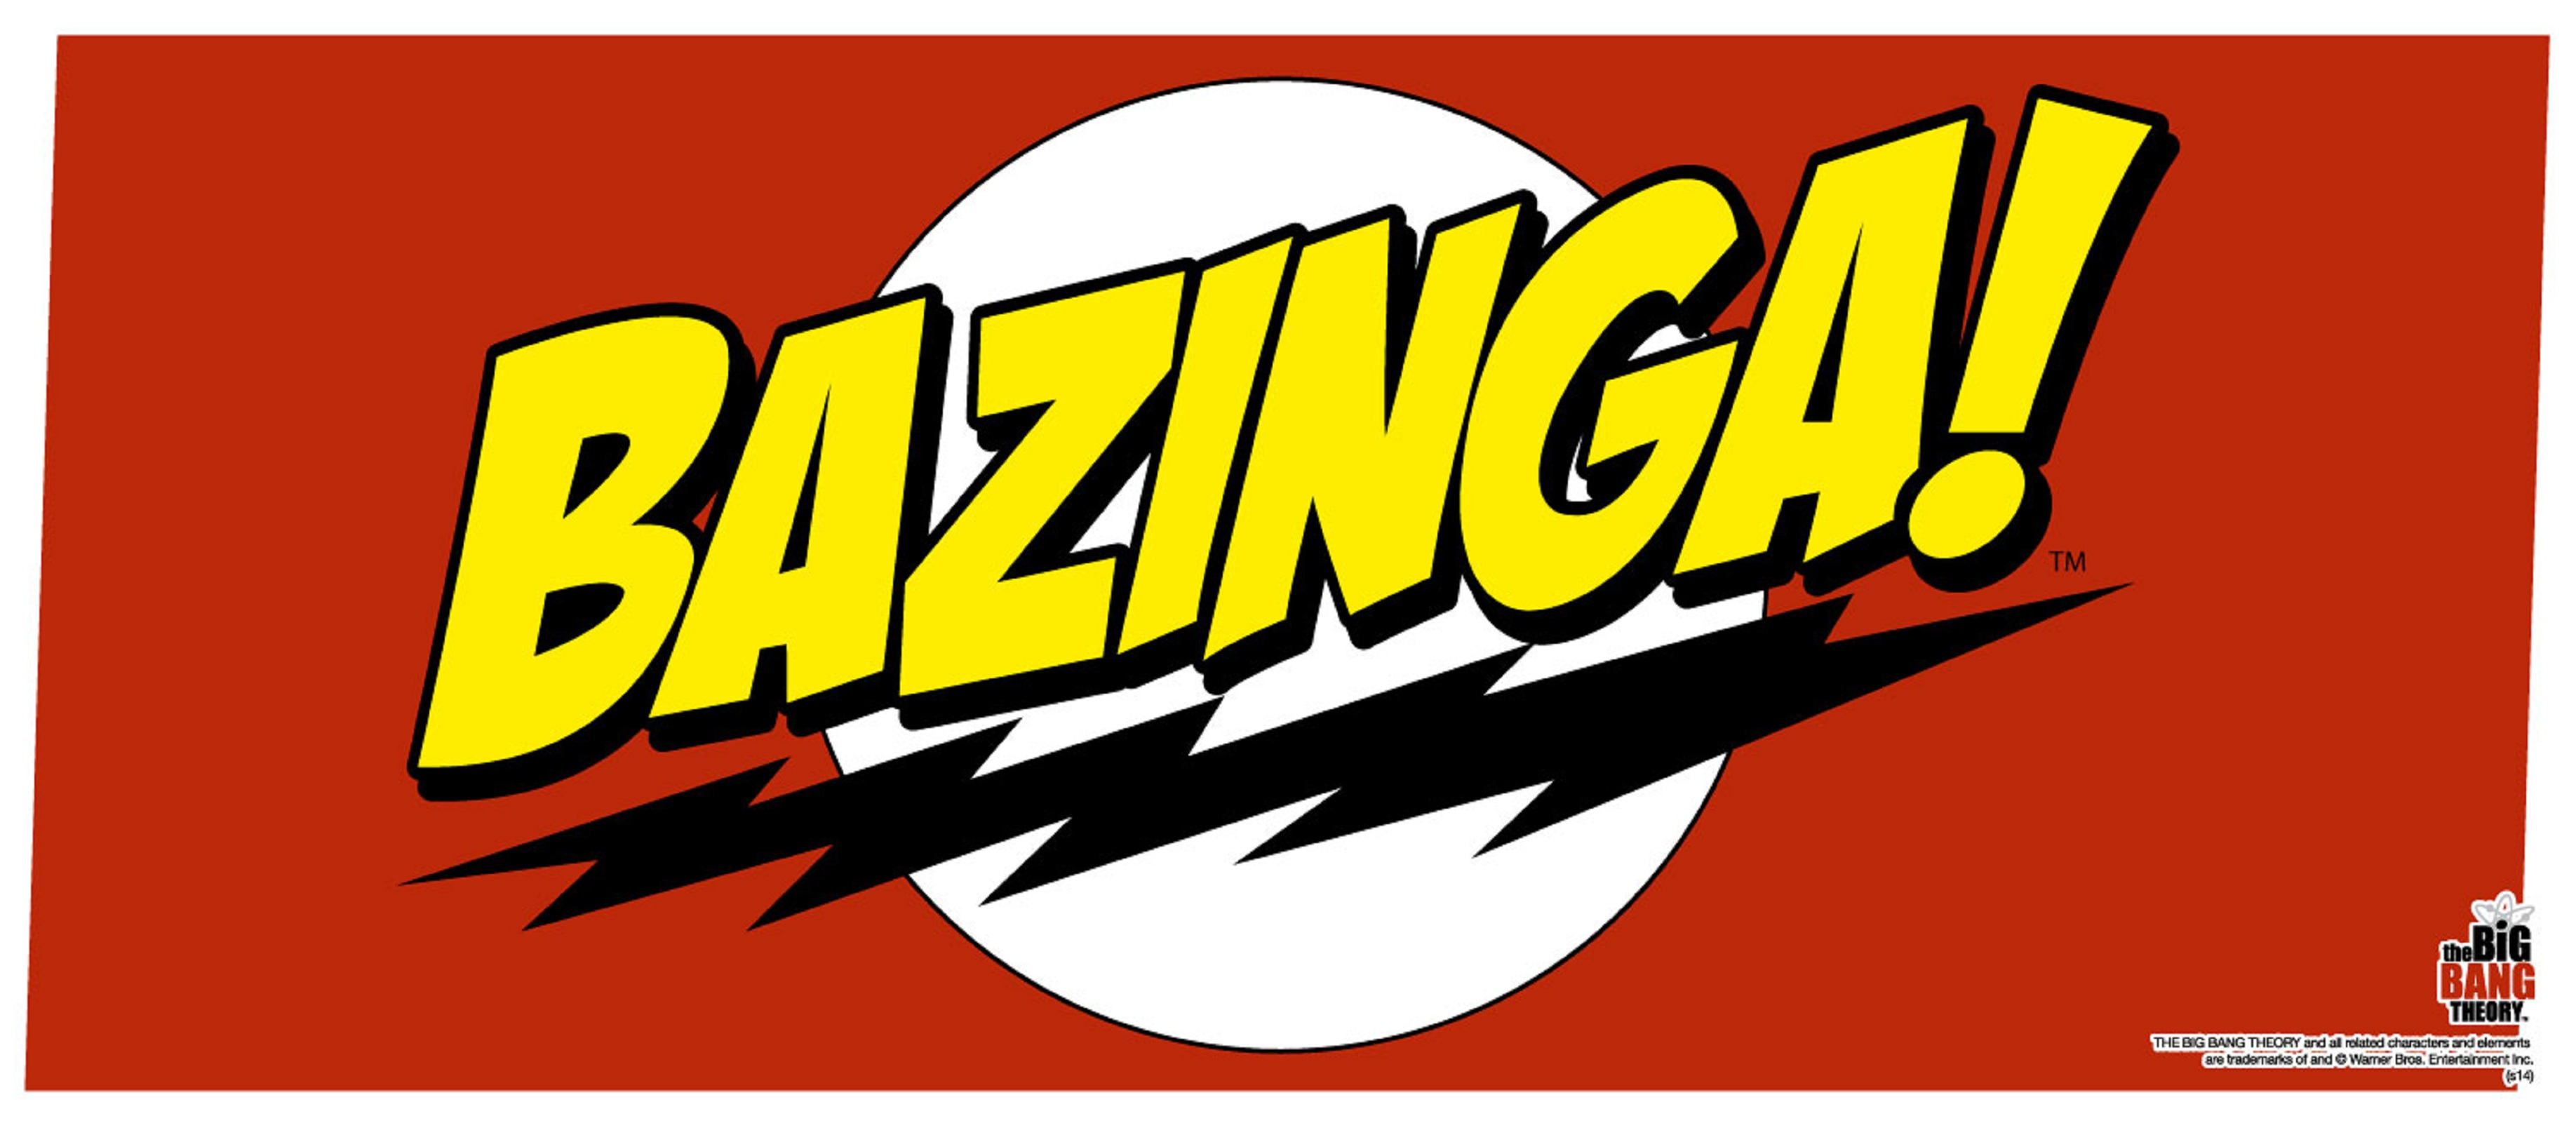 the big bang theory mug bazinga sheldon logo new official boxed ebay rh ebay com bazinga logo generator bazinga logo